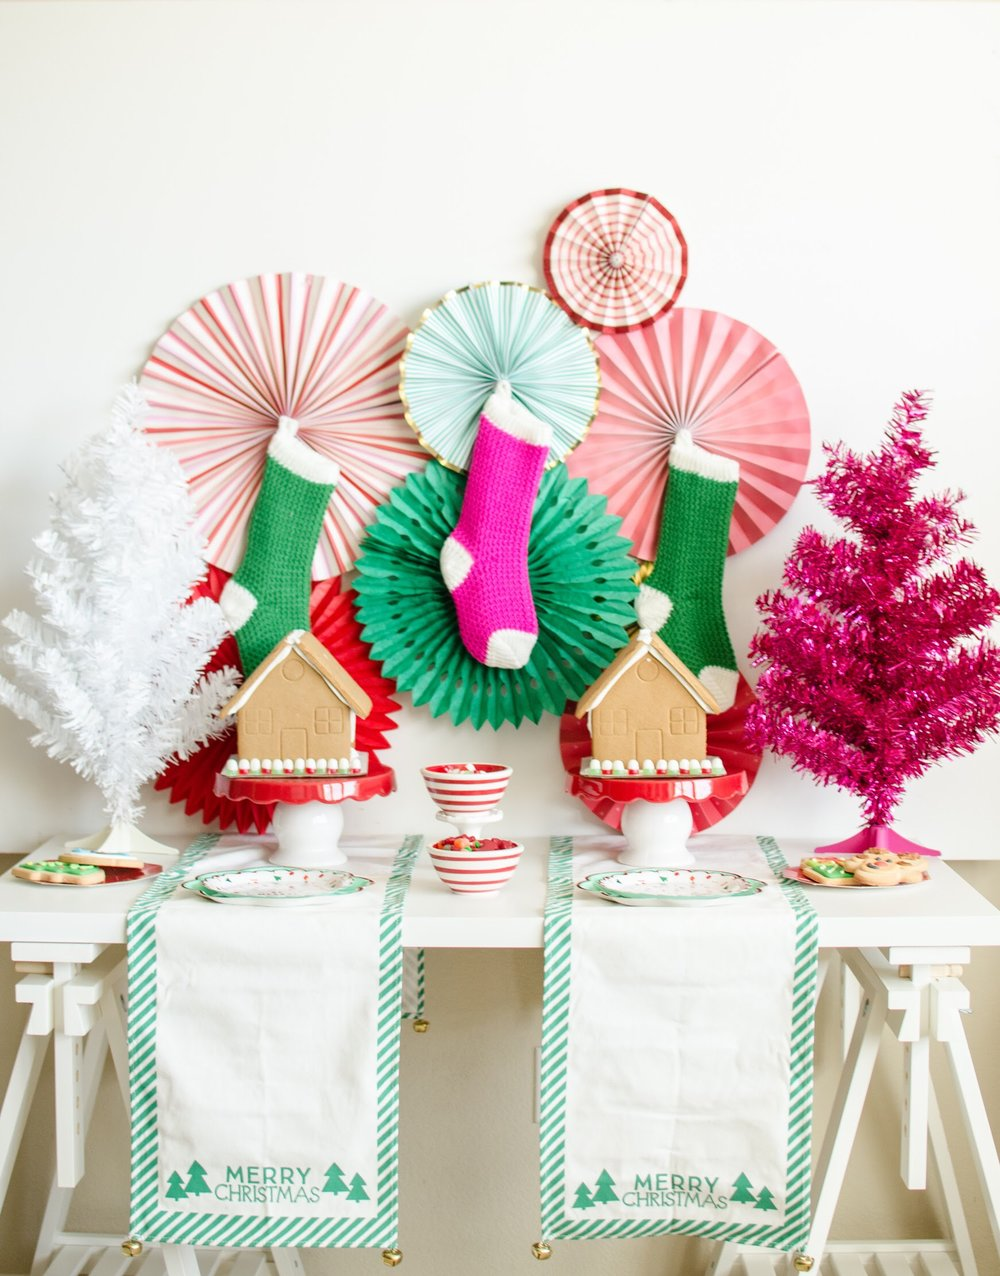 Surprise Your Kids With A Fun Gingerbread House Decorating Party